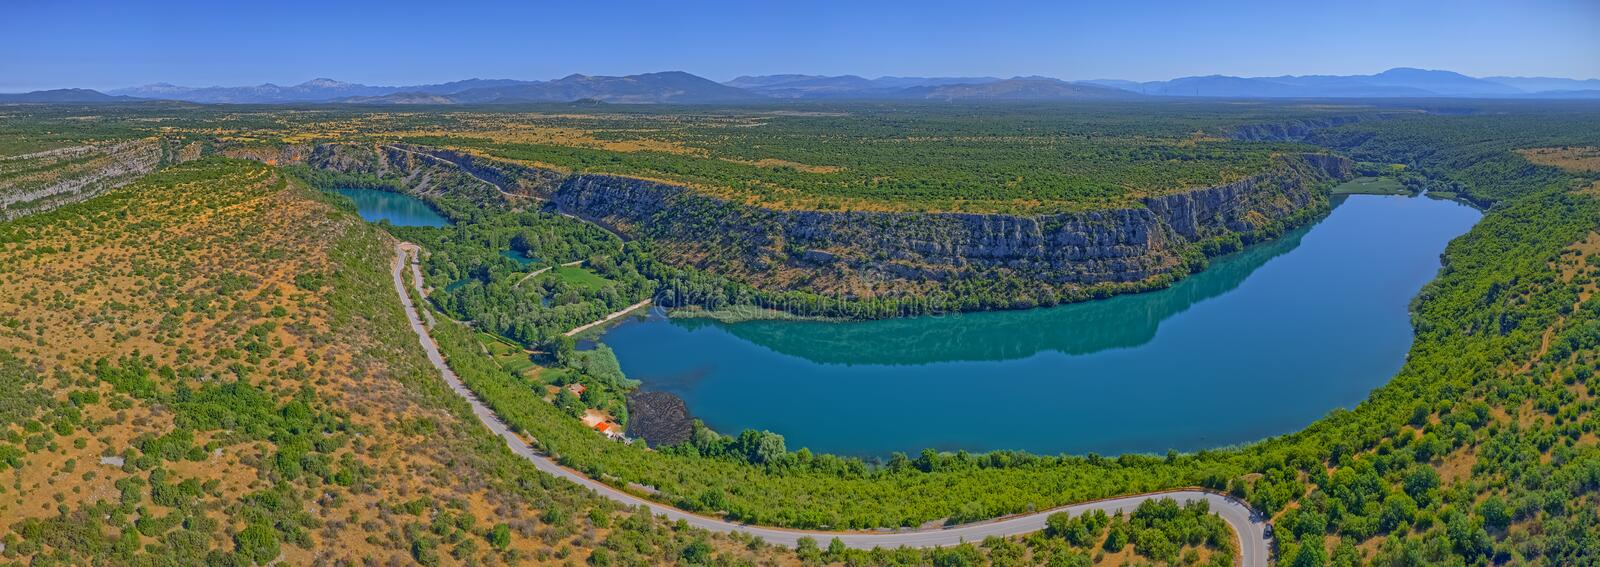 Aerial view of Brljan lake in Croatia in canyon of the Krka River stock image